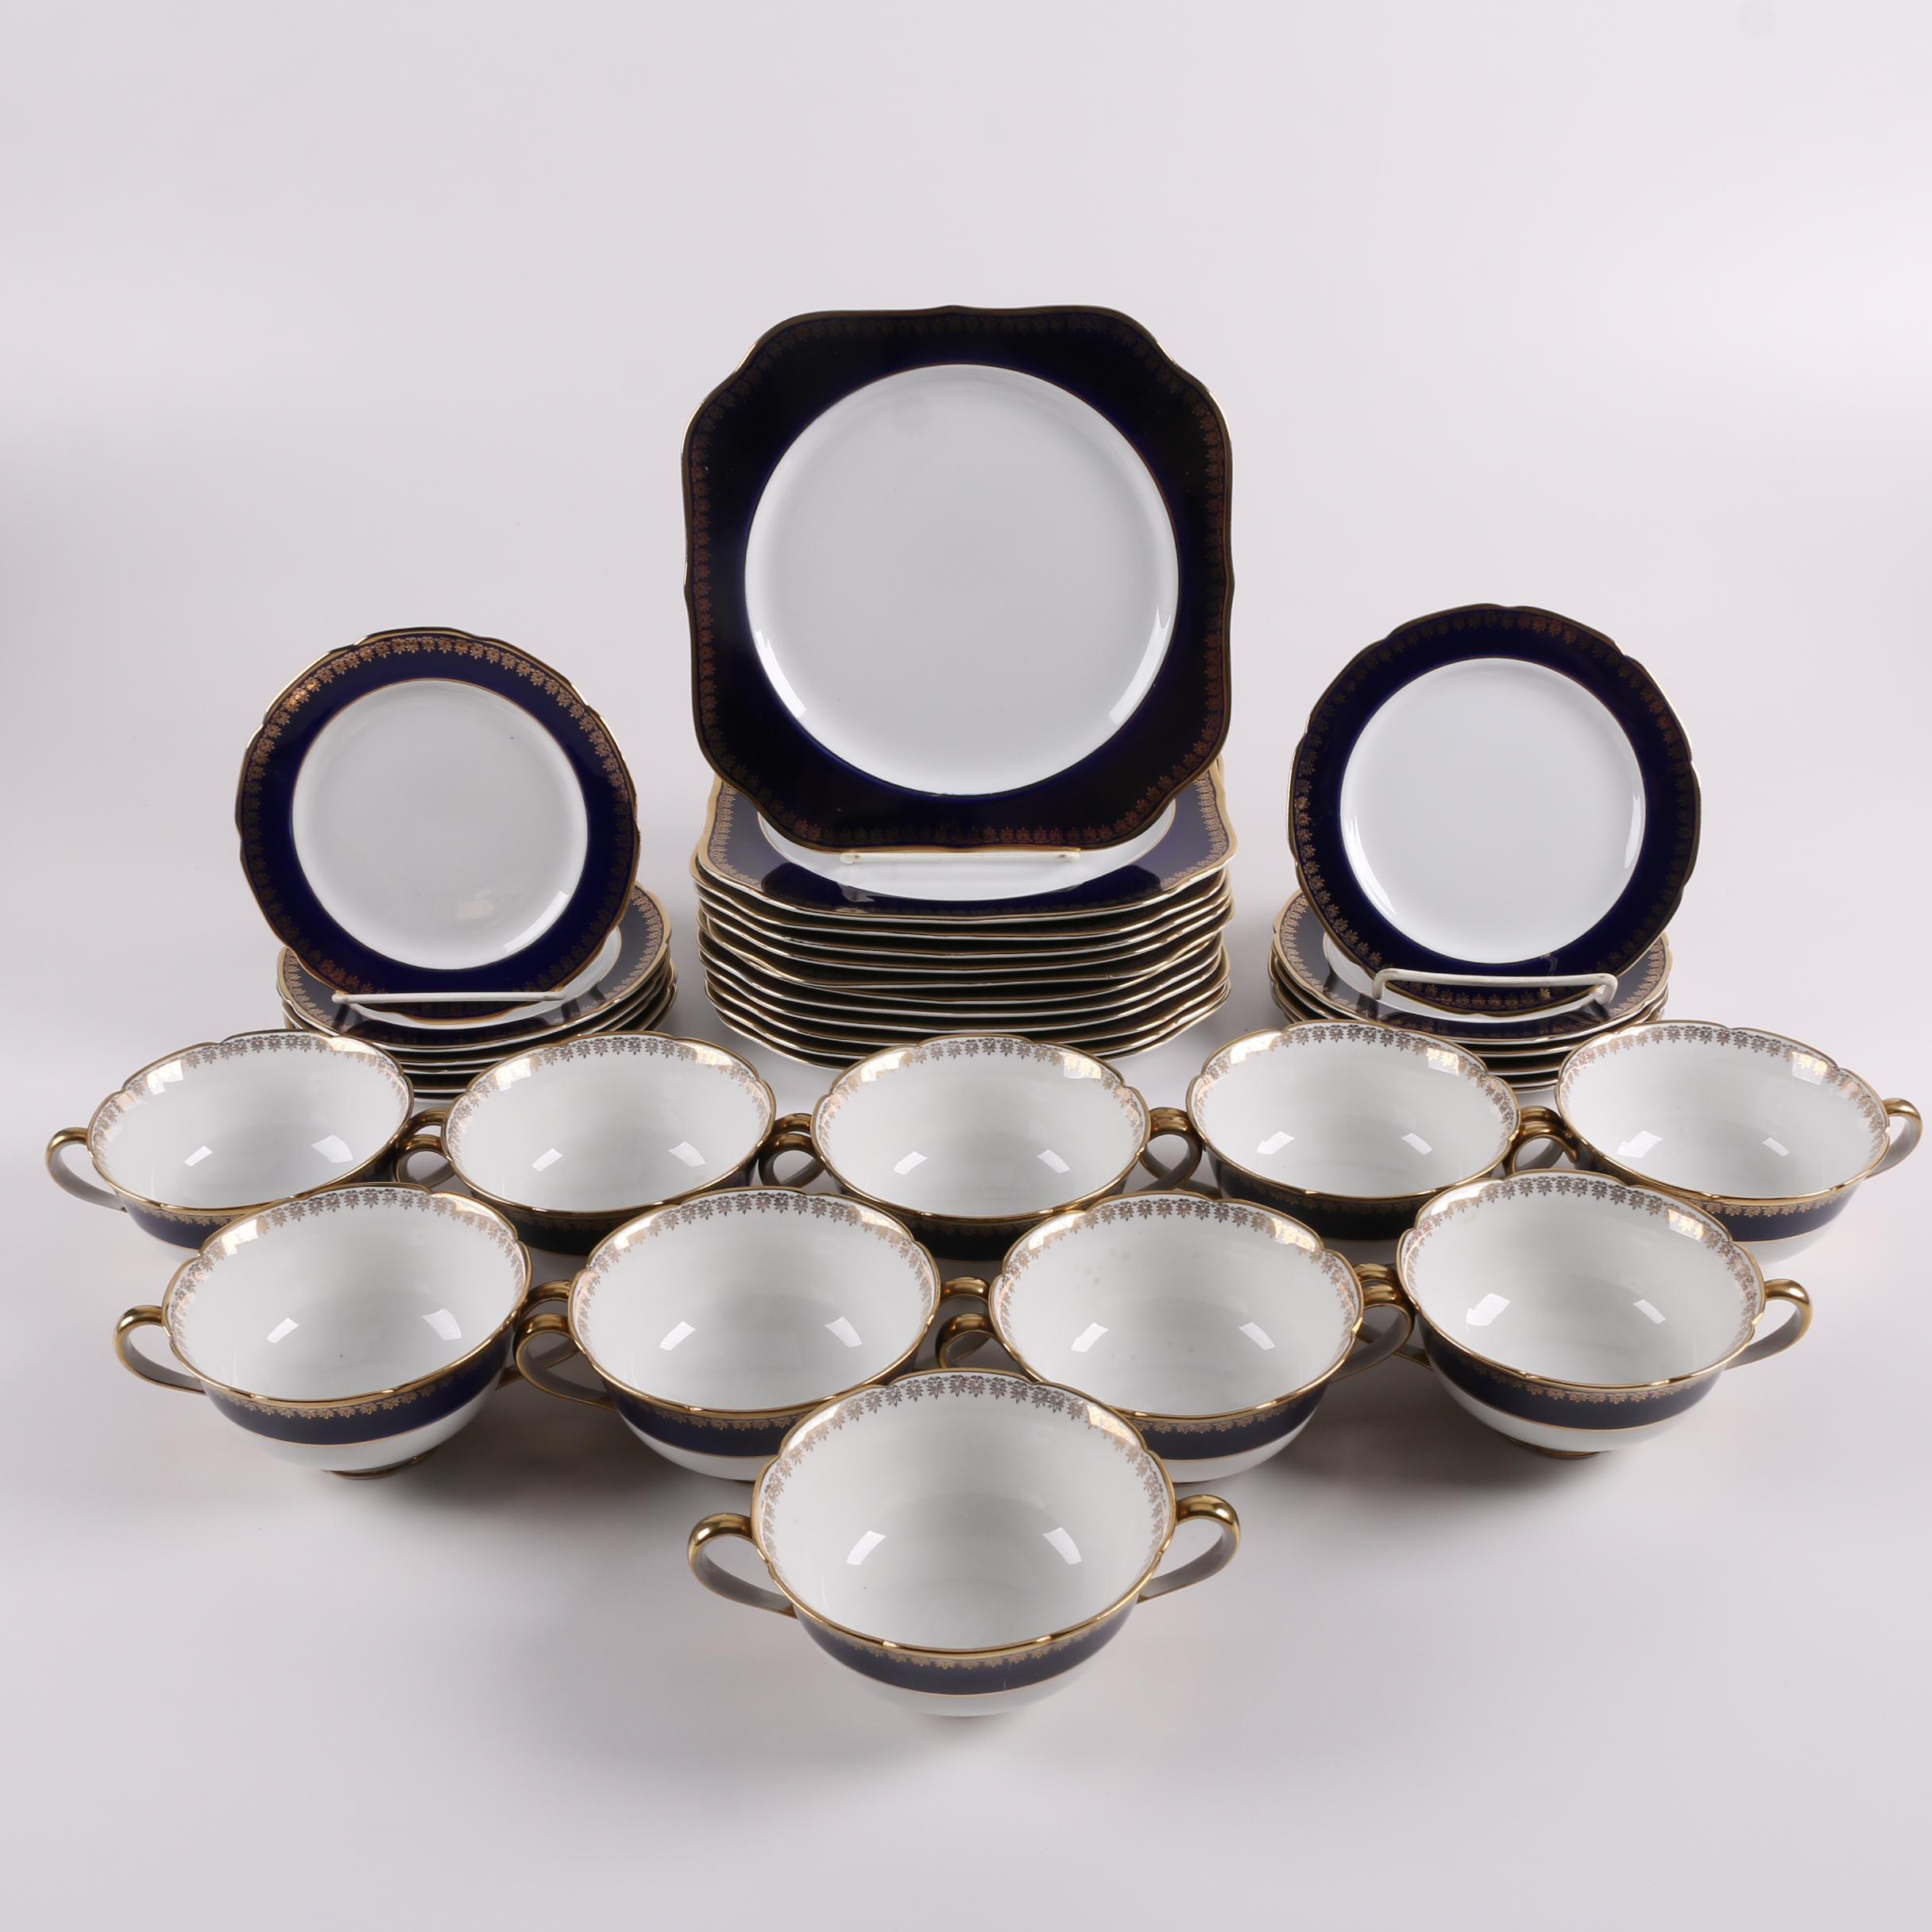 Japanese Kokura Ware Porcelain Plates and Cream Soup Bowls